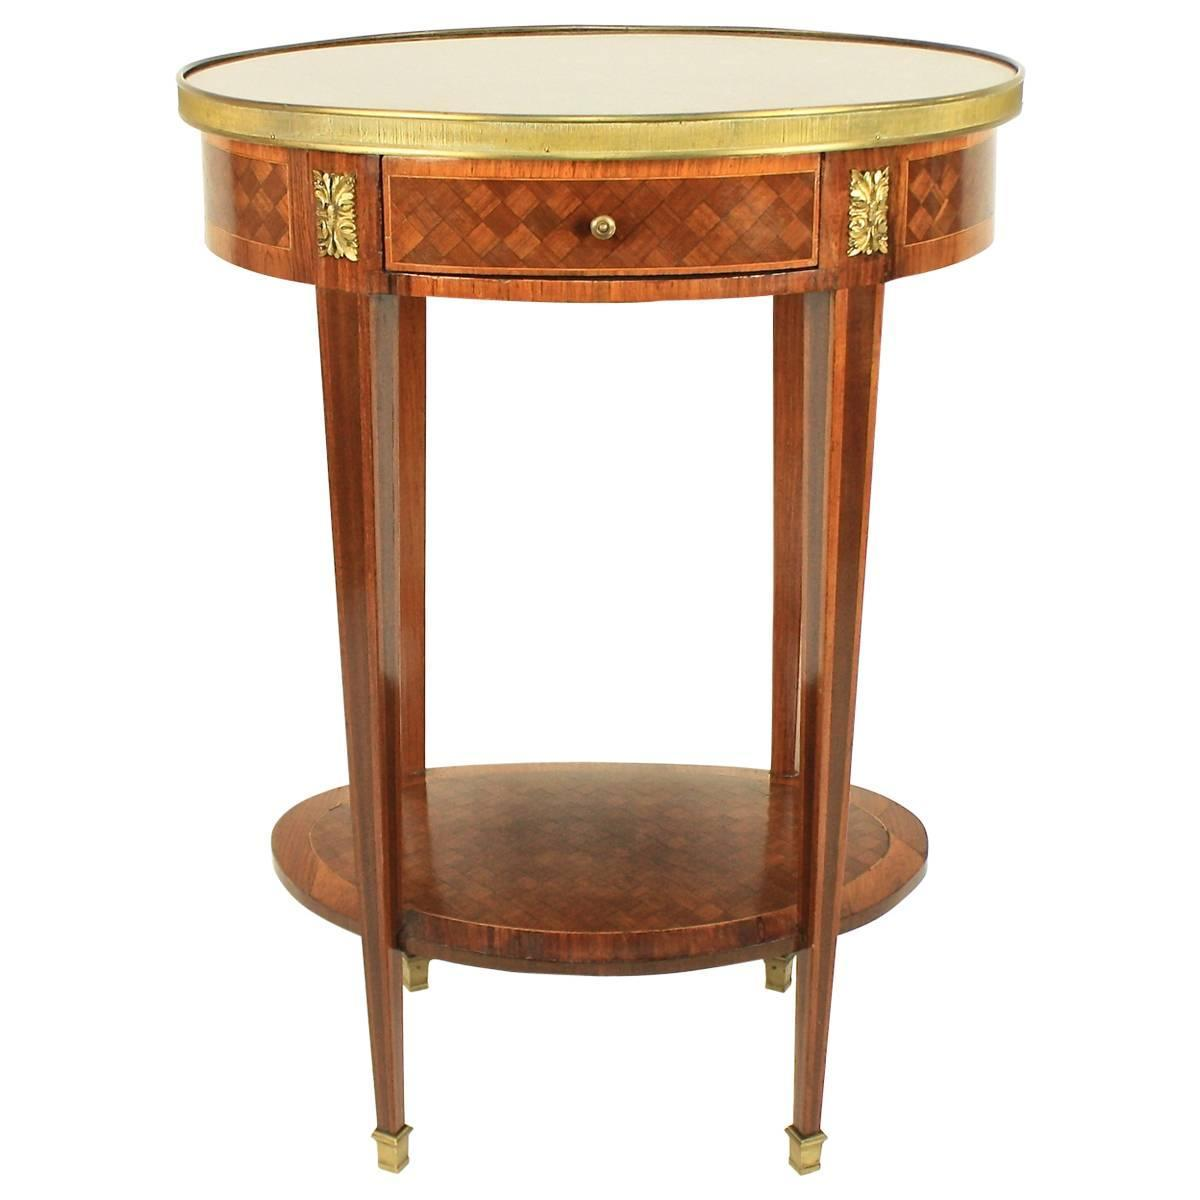 Red Marble Top : Th century bronze mounted marquetry oval side table with